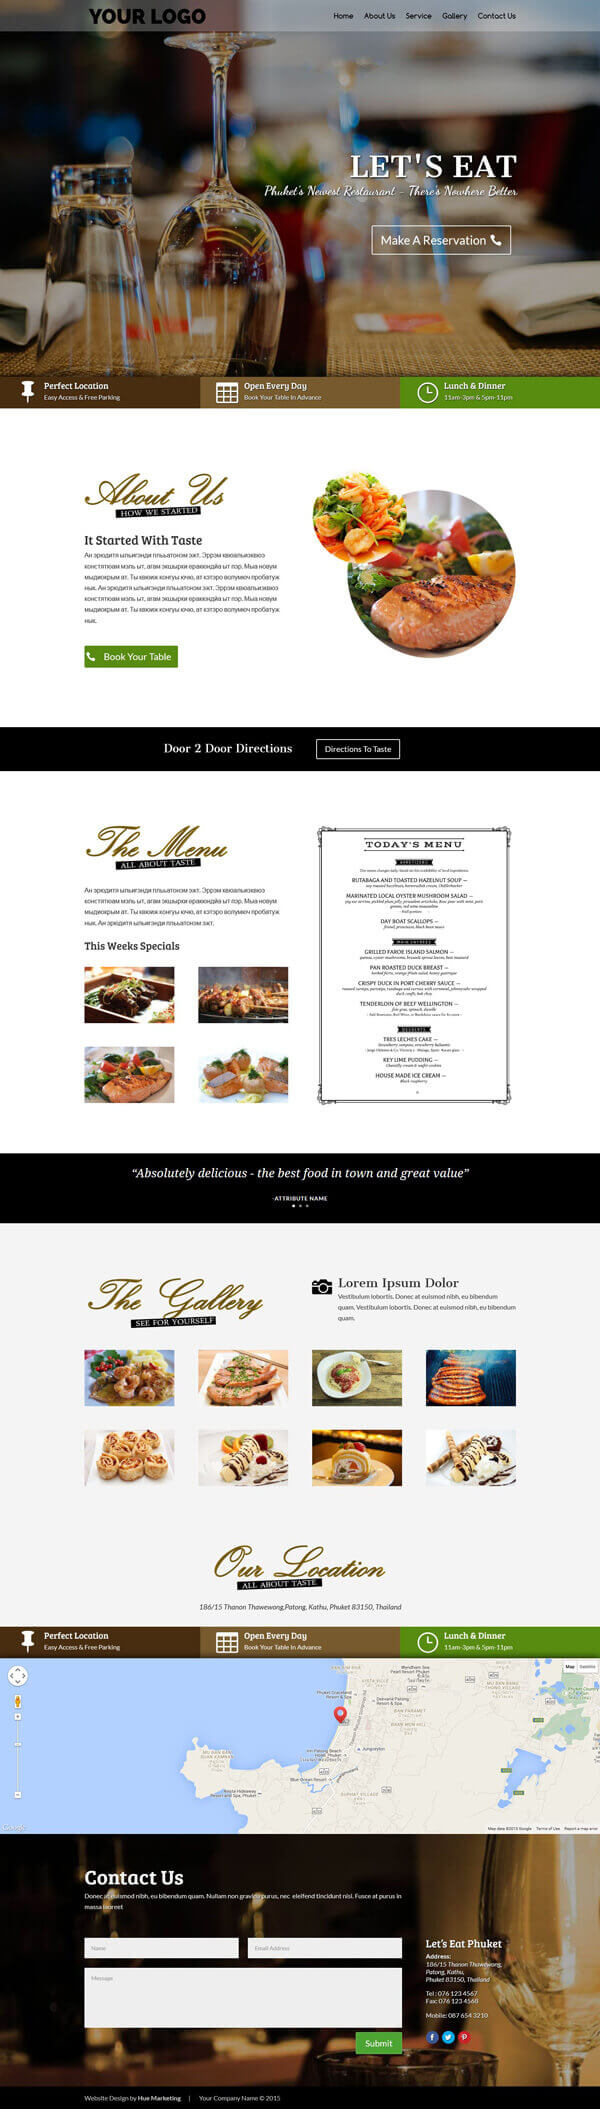 Sample Single Page Layout Entry Level Website